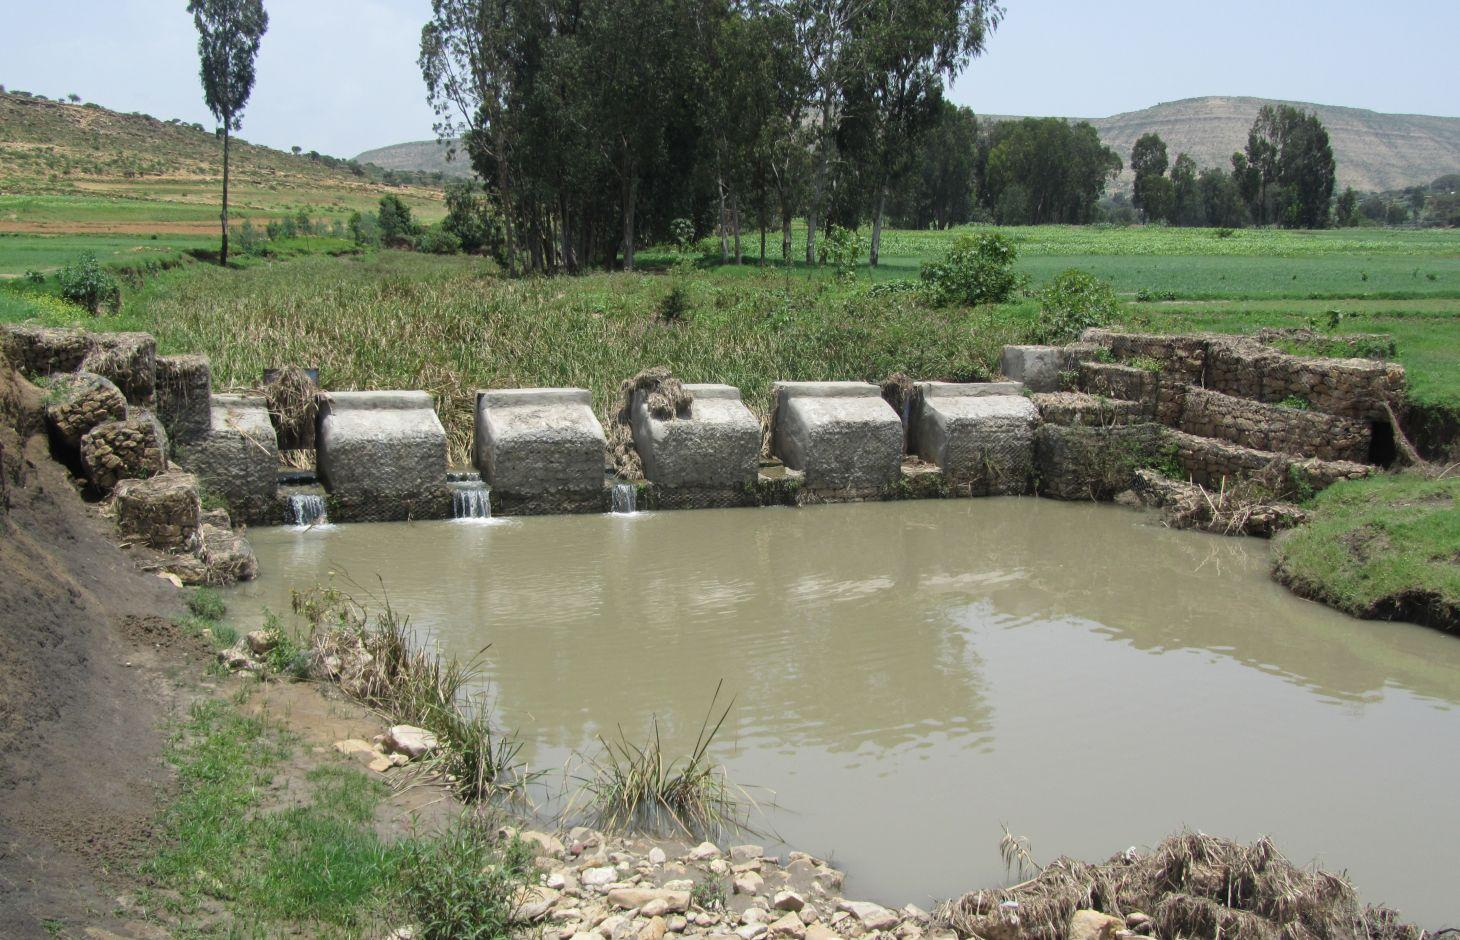 Checkdam with sluice gates removed during rainy season